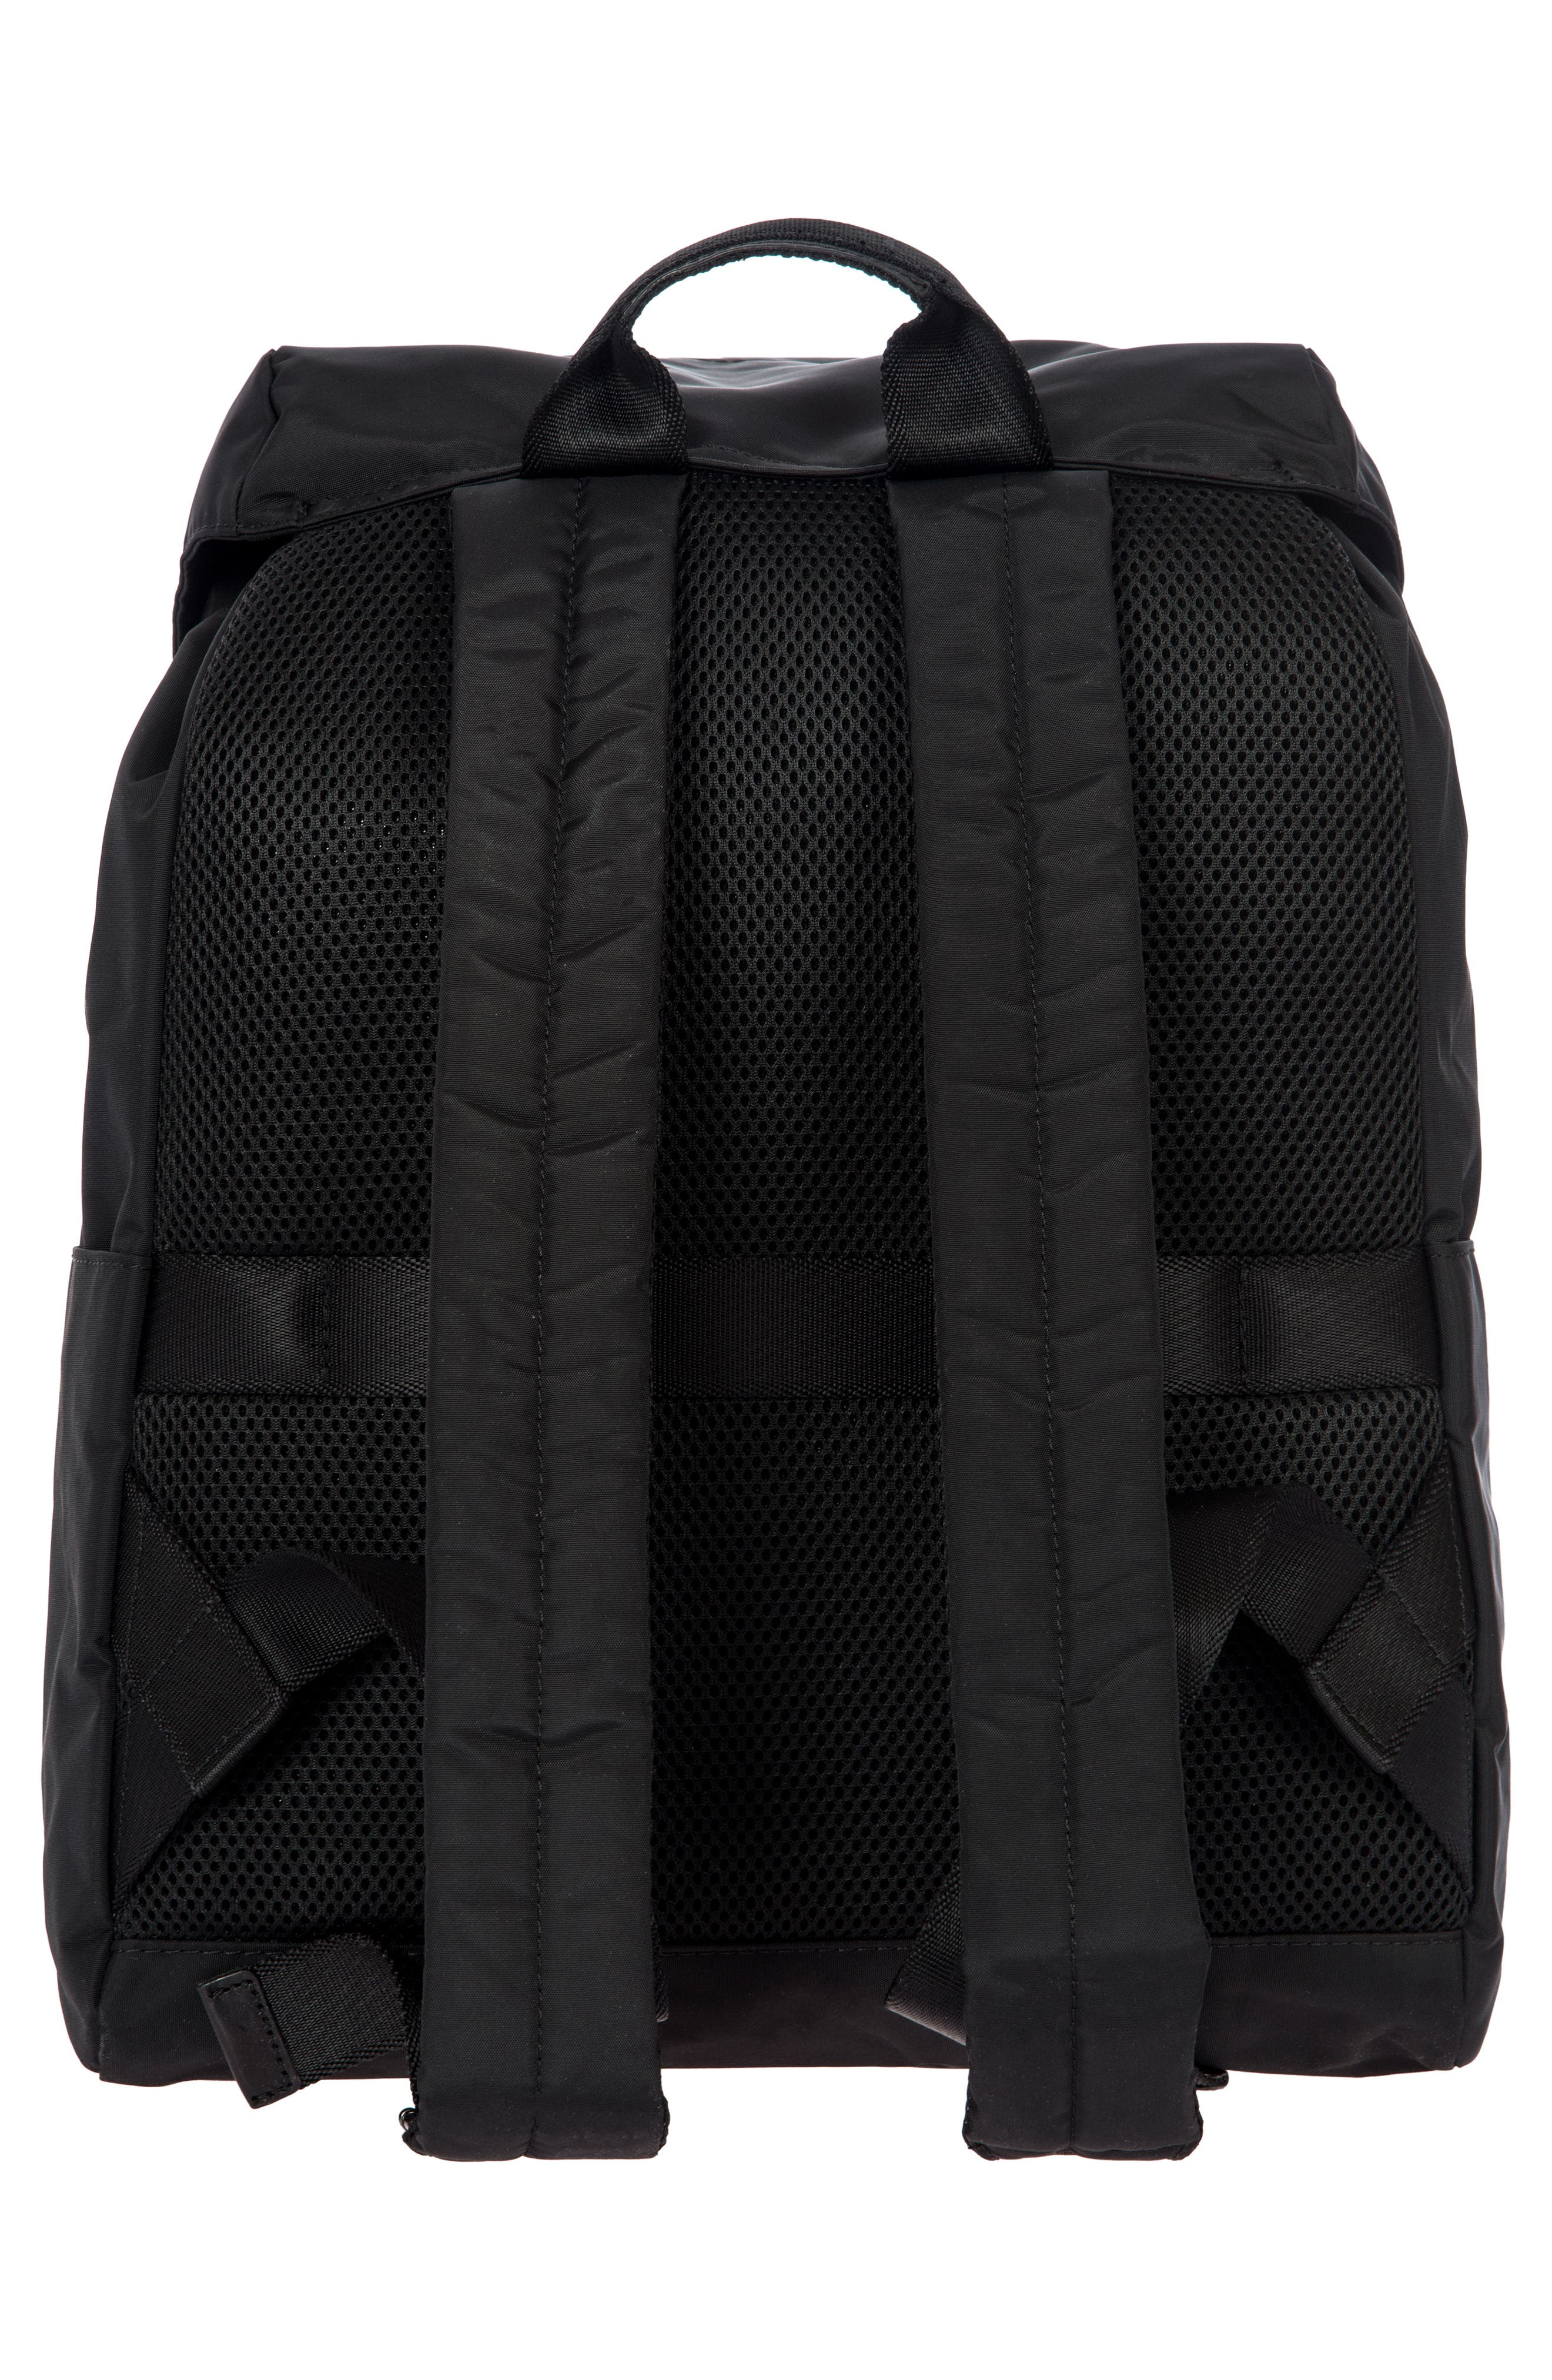 Alternate Image 2  - Bric's X-Bag Travel Excursion Backpack